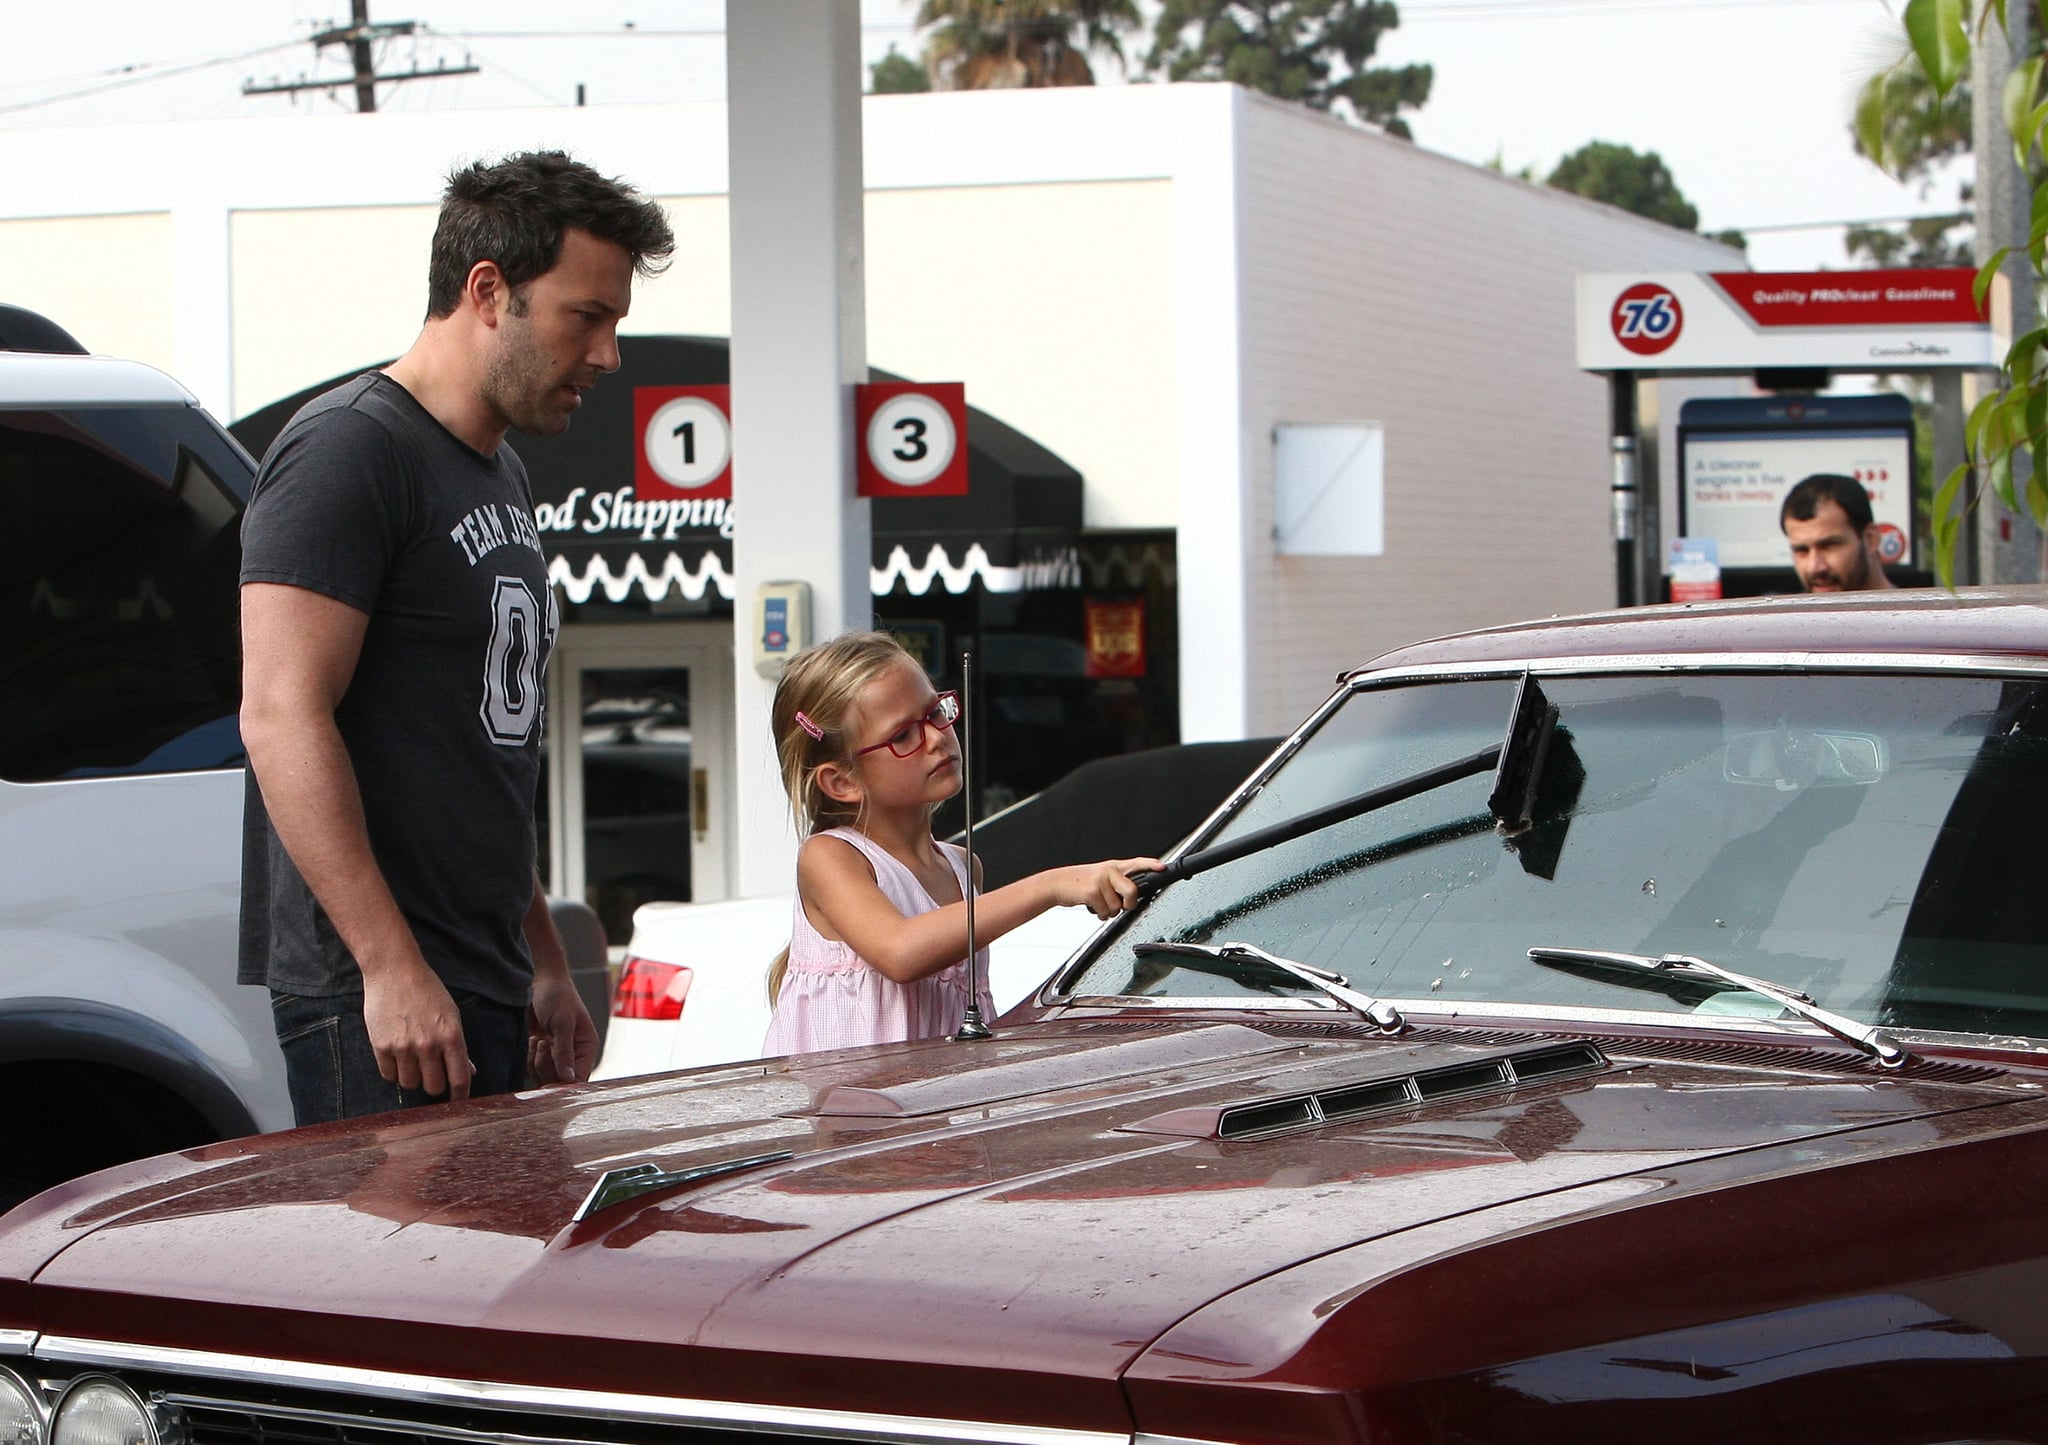 Ben Affleck shared an adorable moment with Violet when he helped her wash the windshield of his vintage Chevy Malibu SS in Malibu.